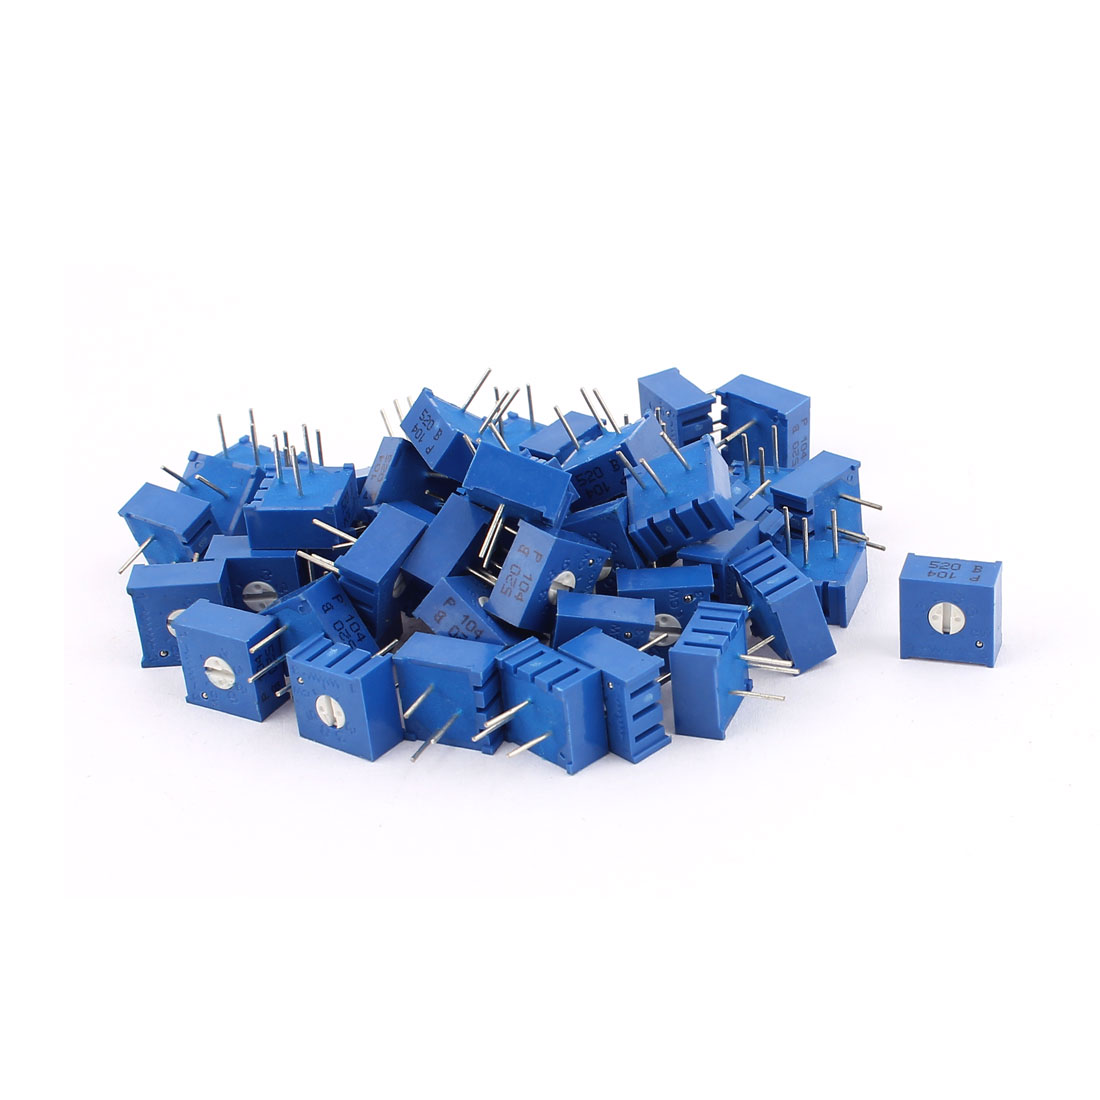 50Pcs Top Adjustment Trimmer Pot Potentiometer Resistors 100K Ohm 3386P